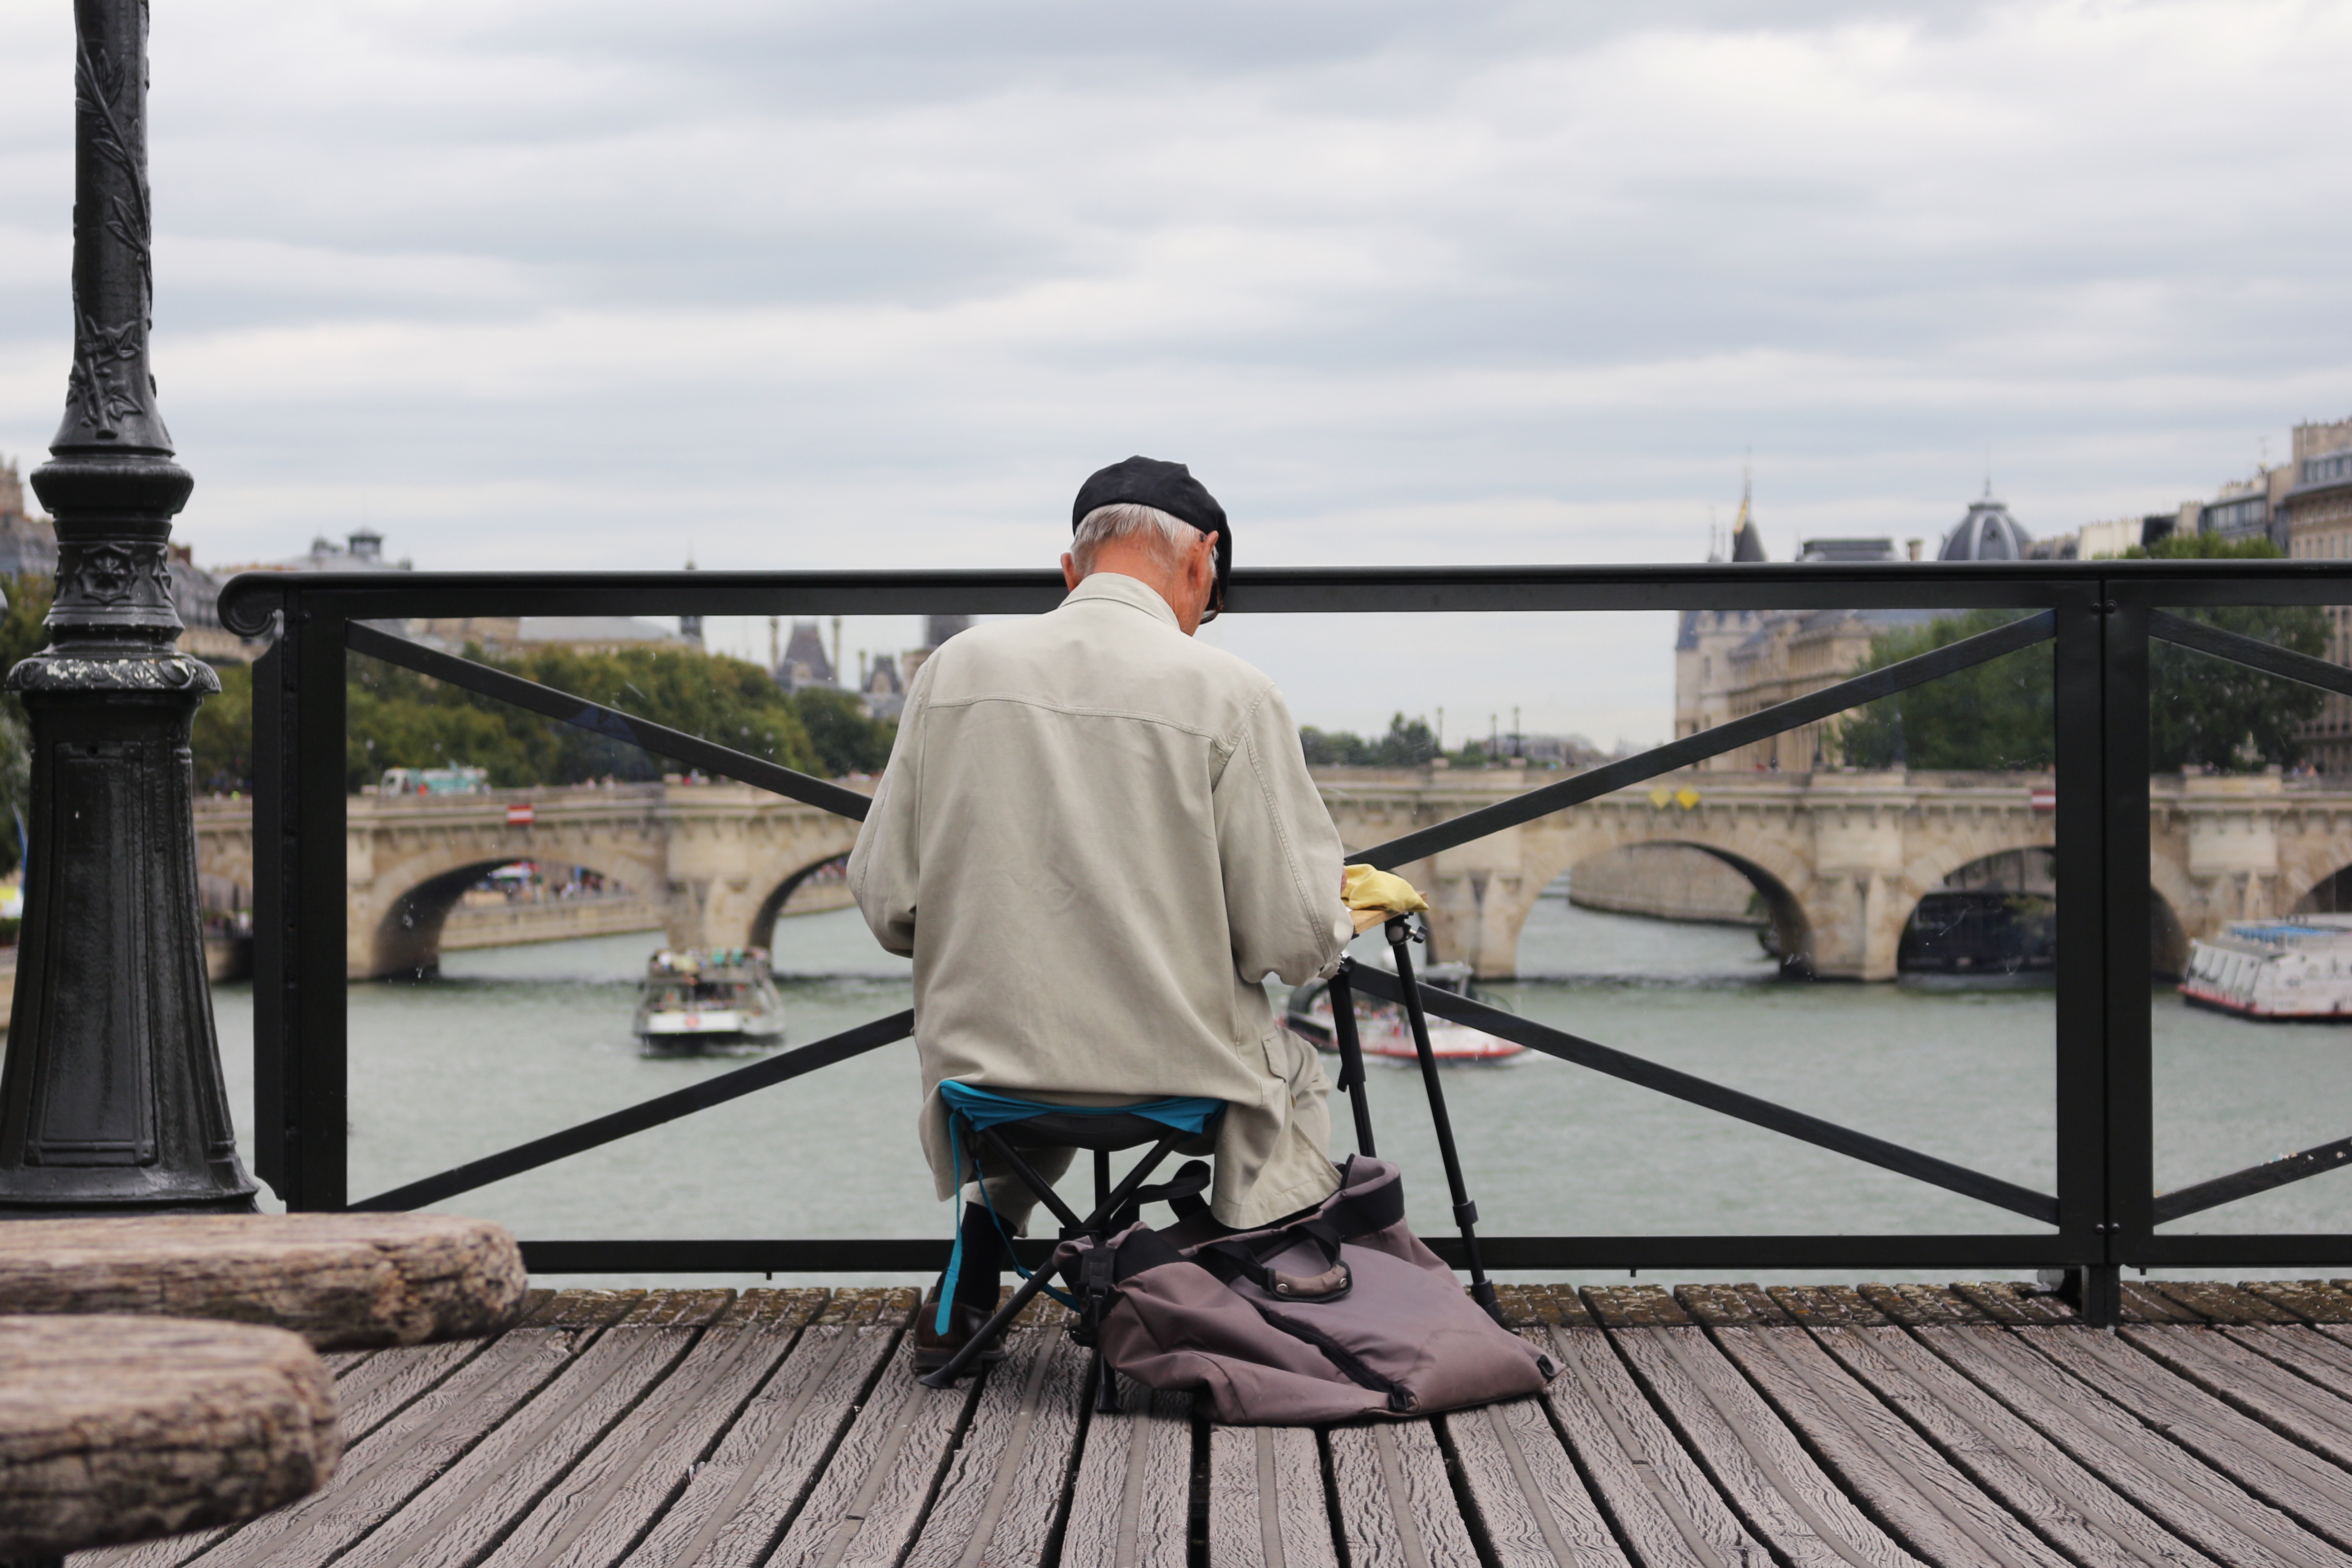 paiting the seine